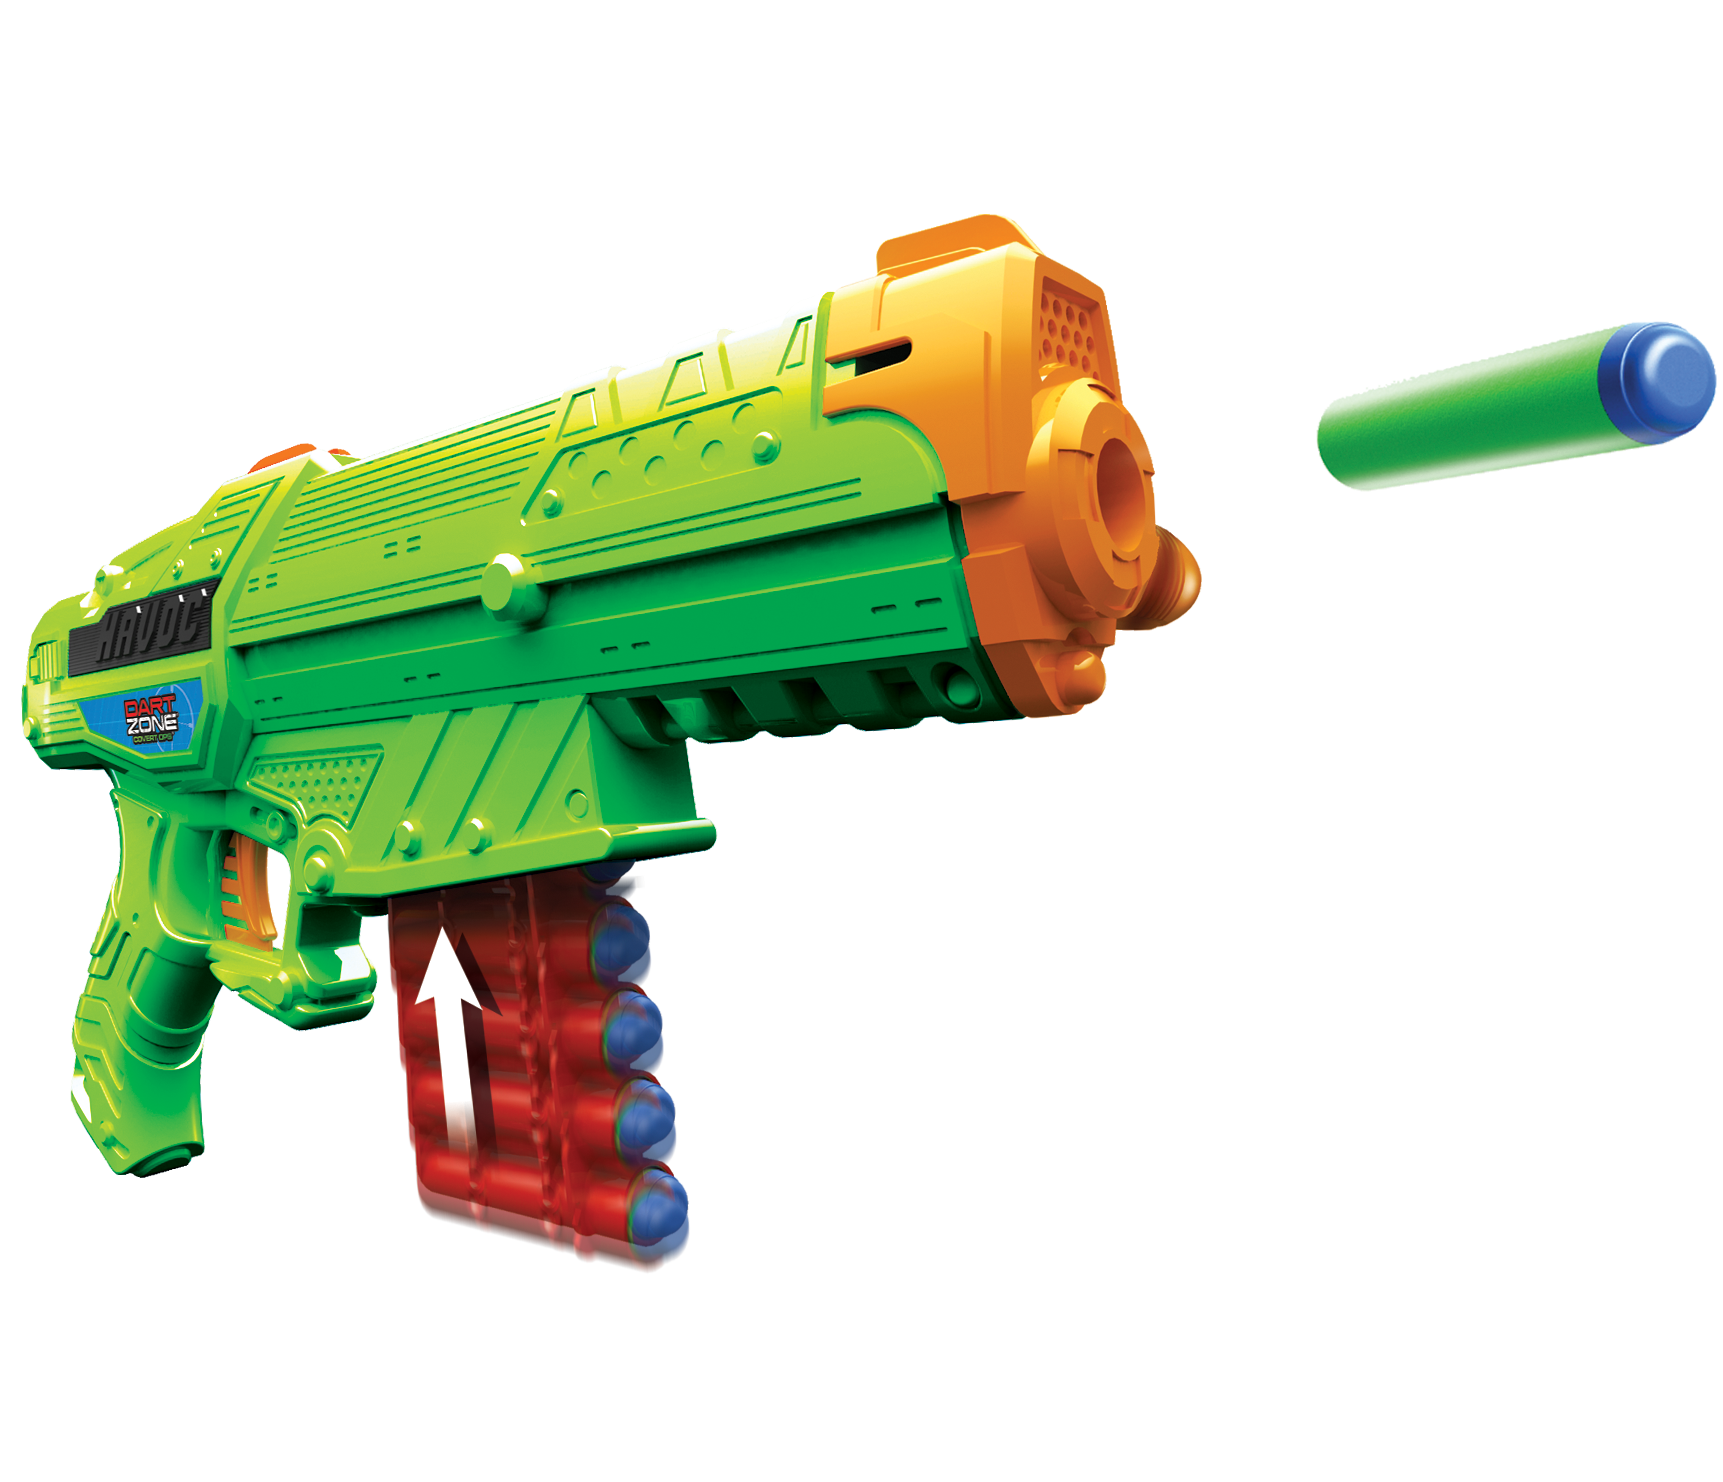 Toy Force Blaster Weapon Enforcer Adventure Nstrike PNG Image